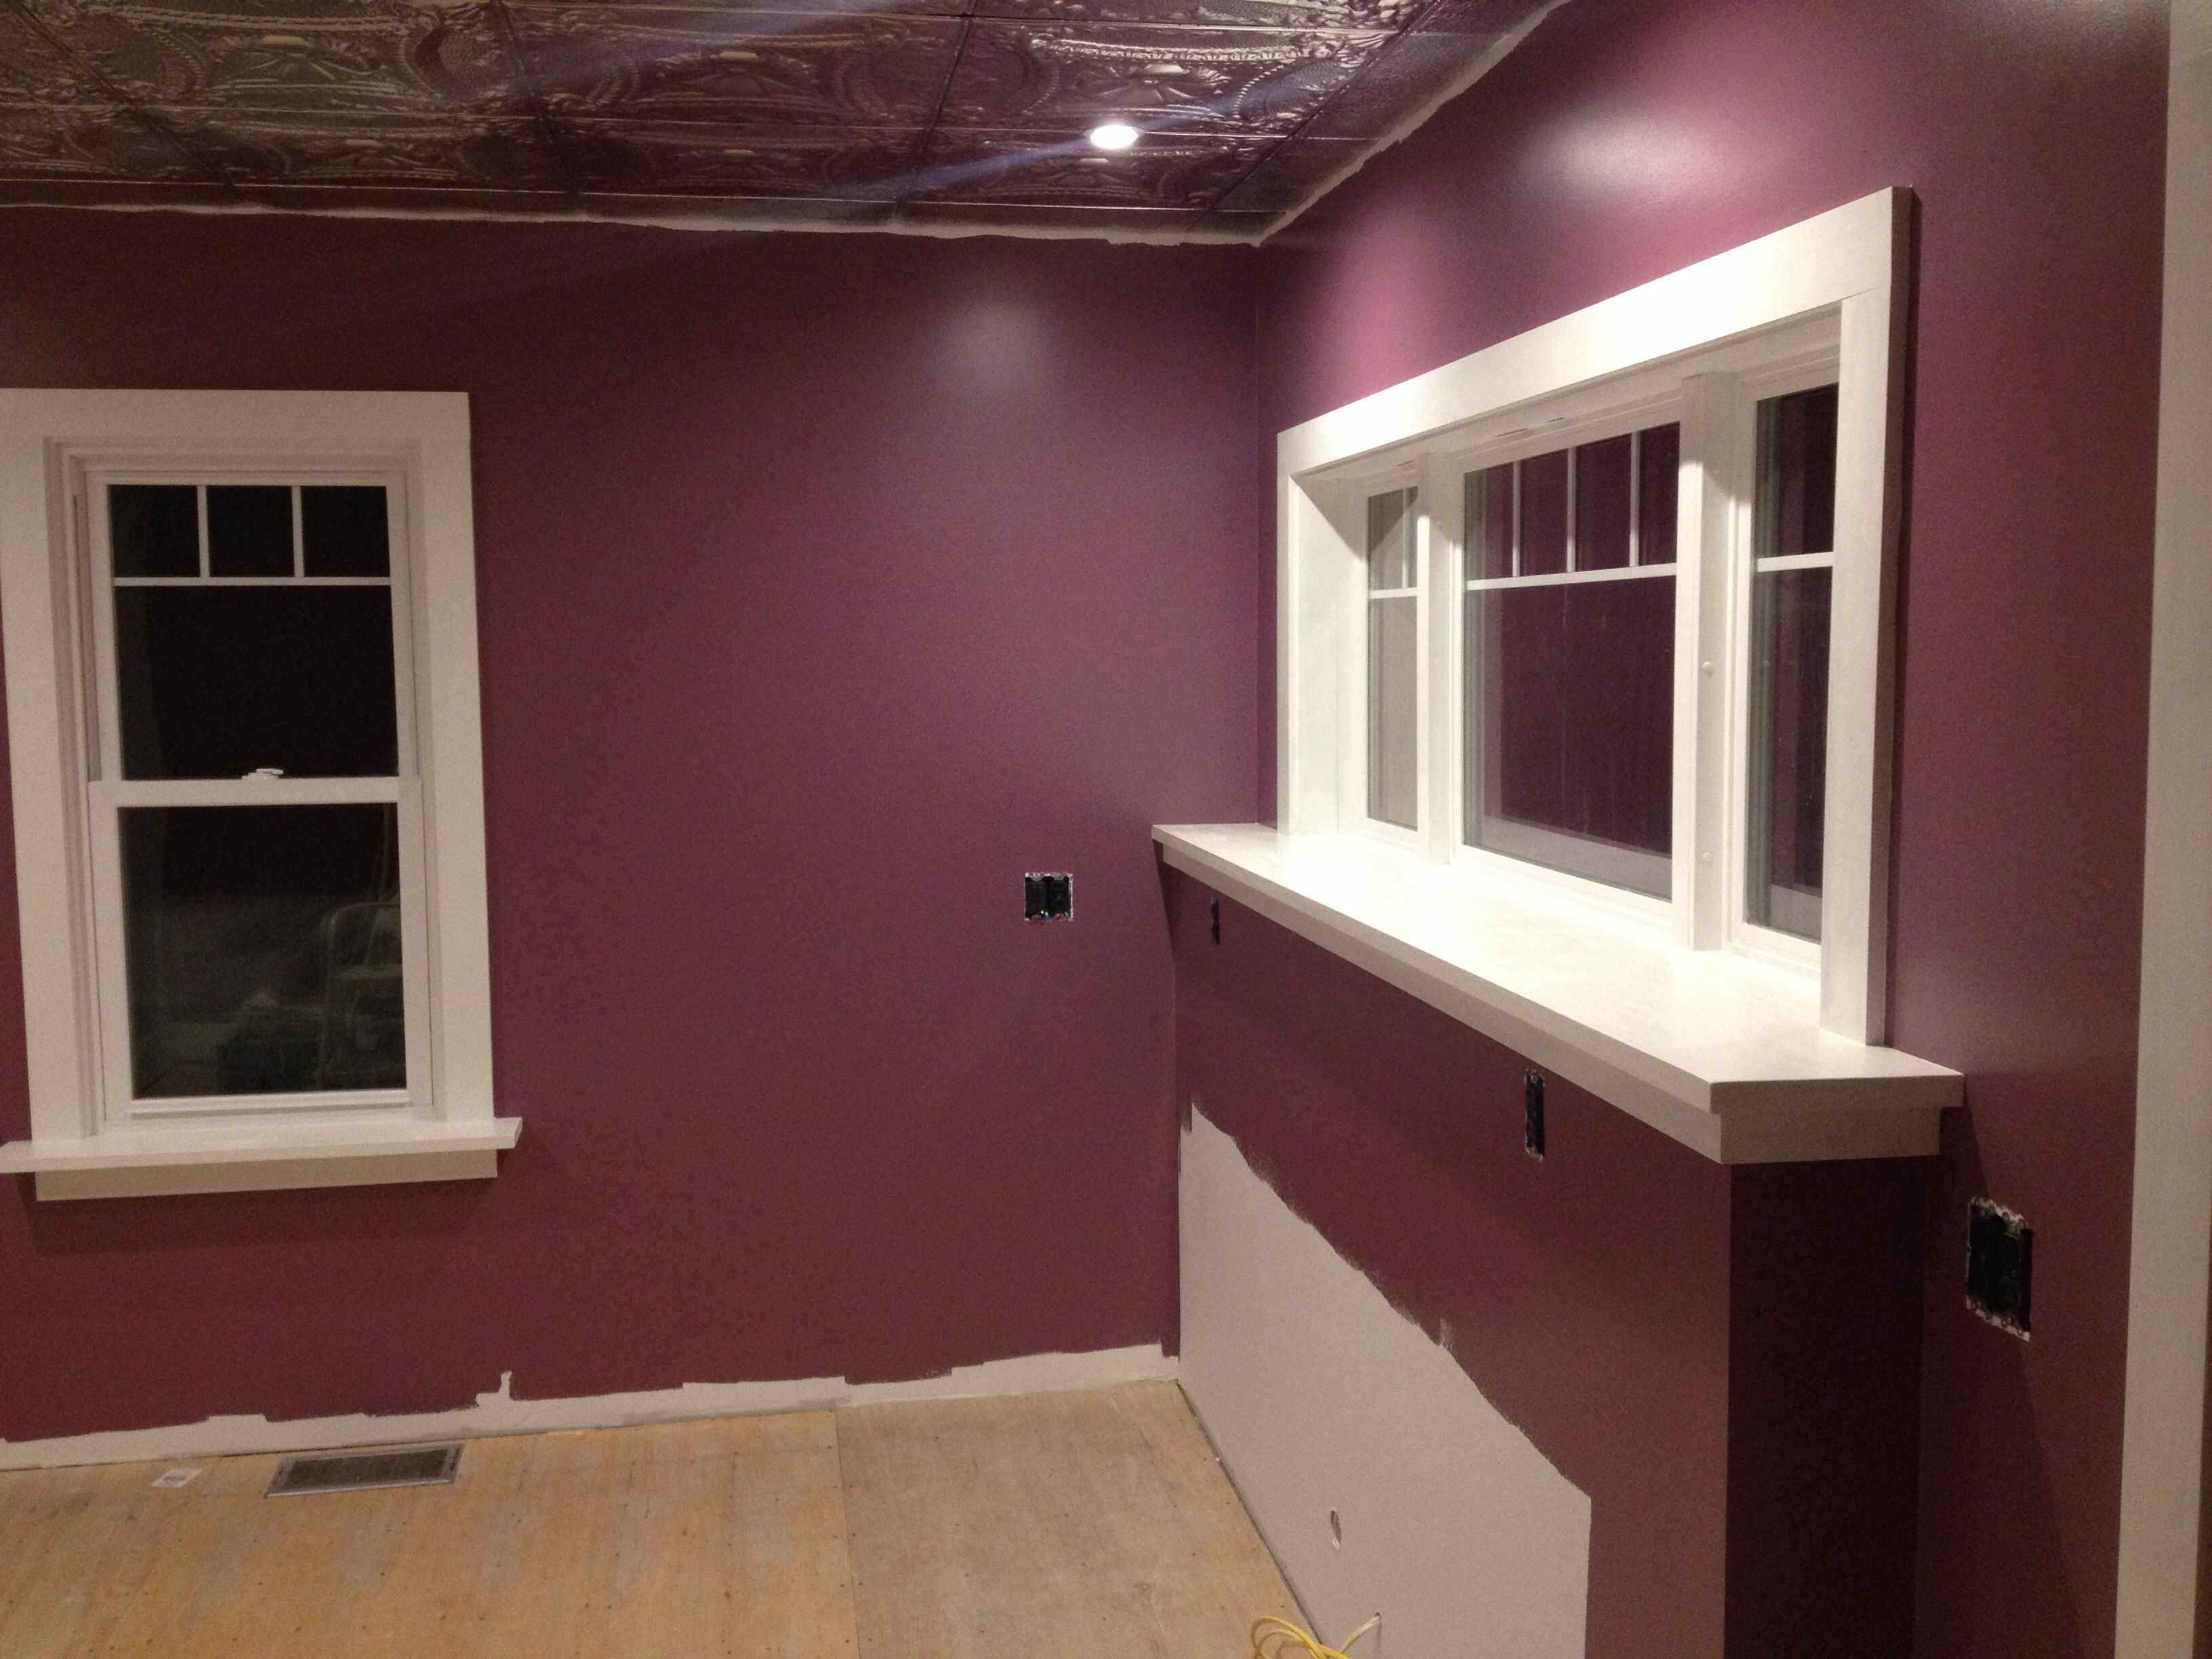 Sherwin Williams Plum Dandy! | Kitchen ideas | Pinterest